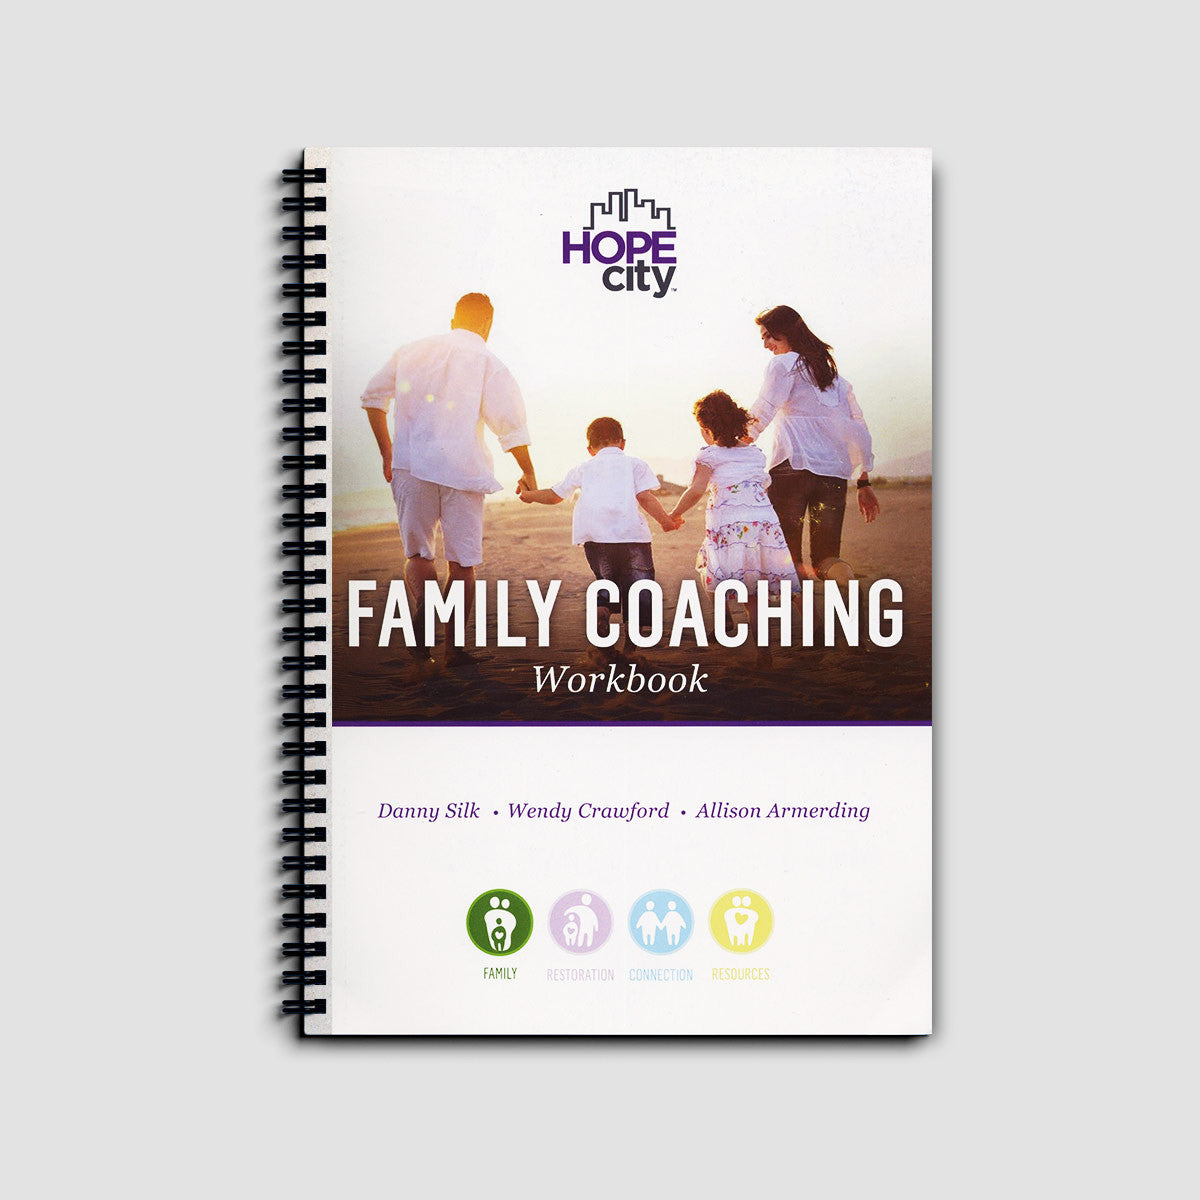 Family Coaching Workbook